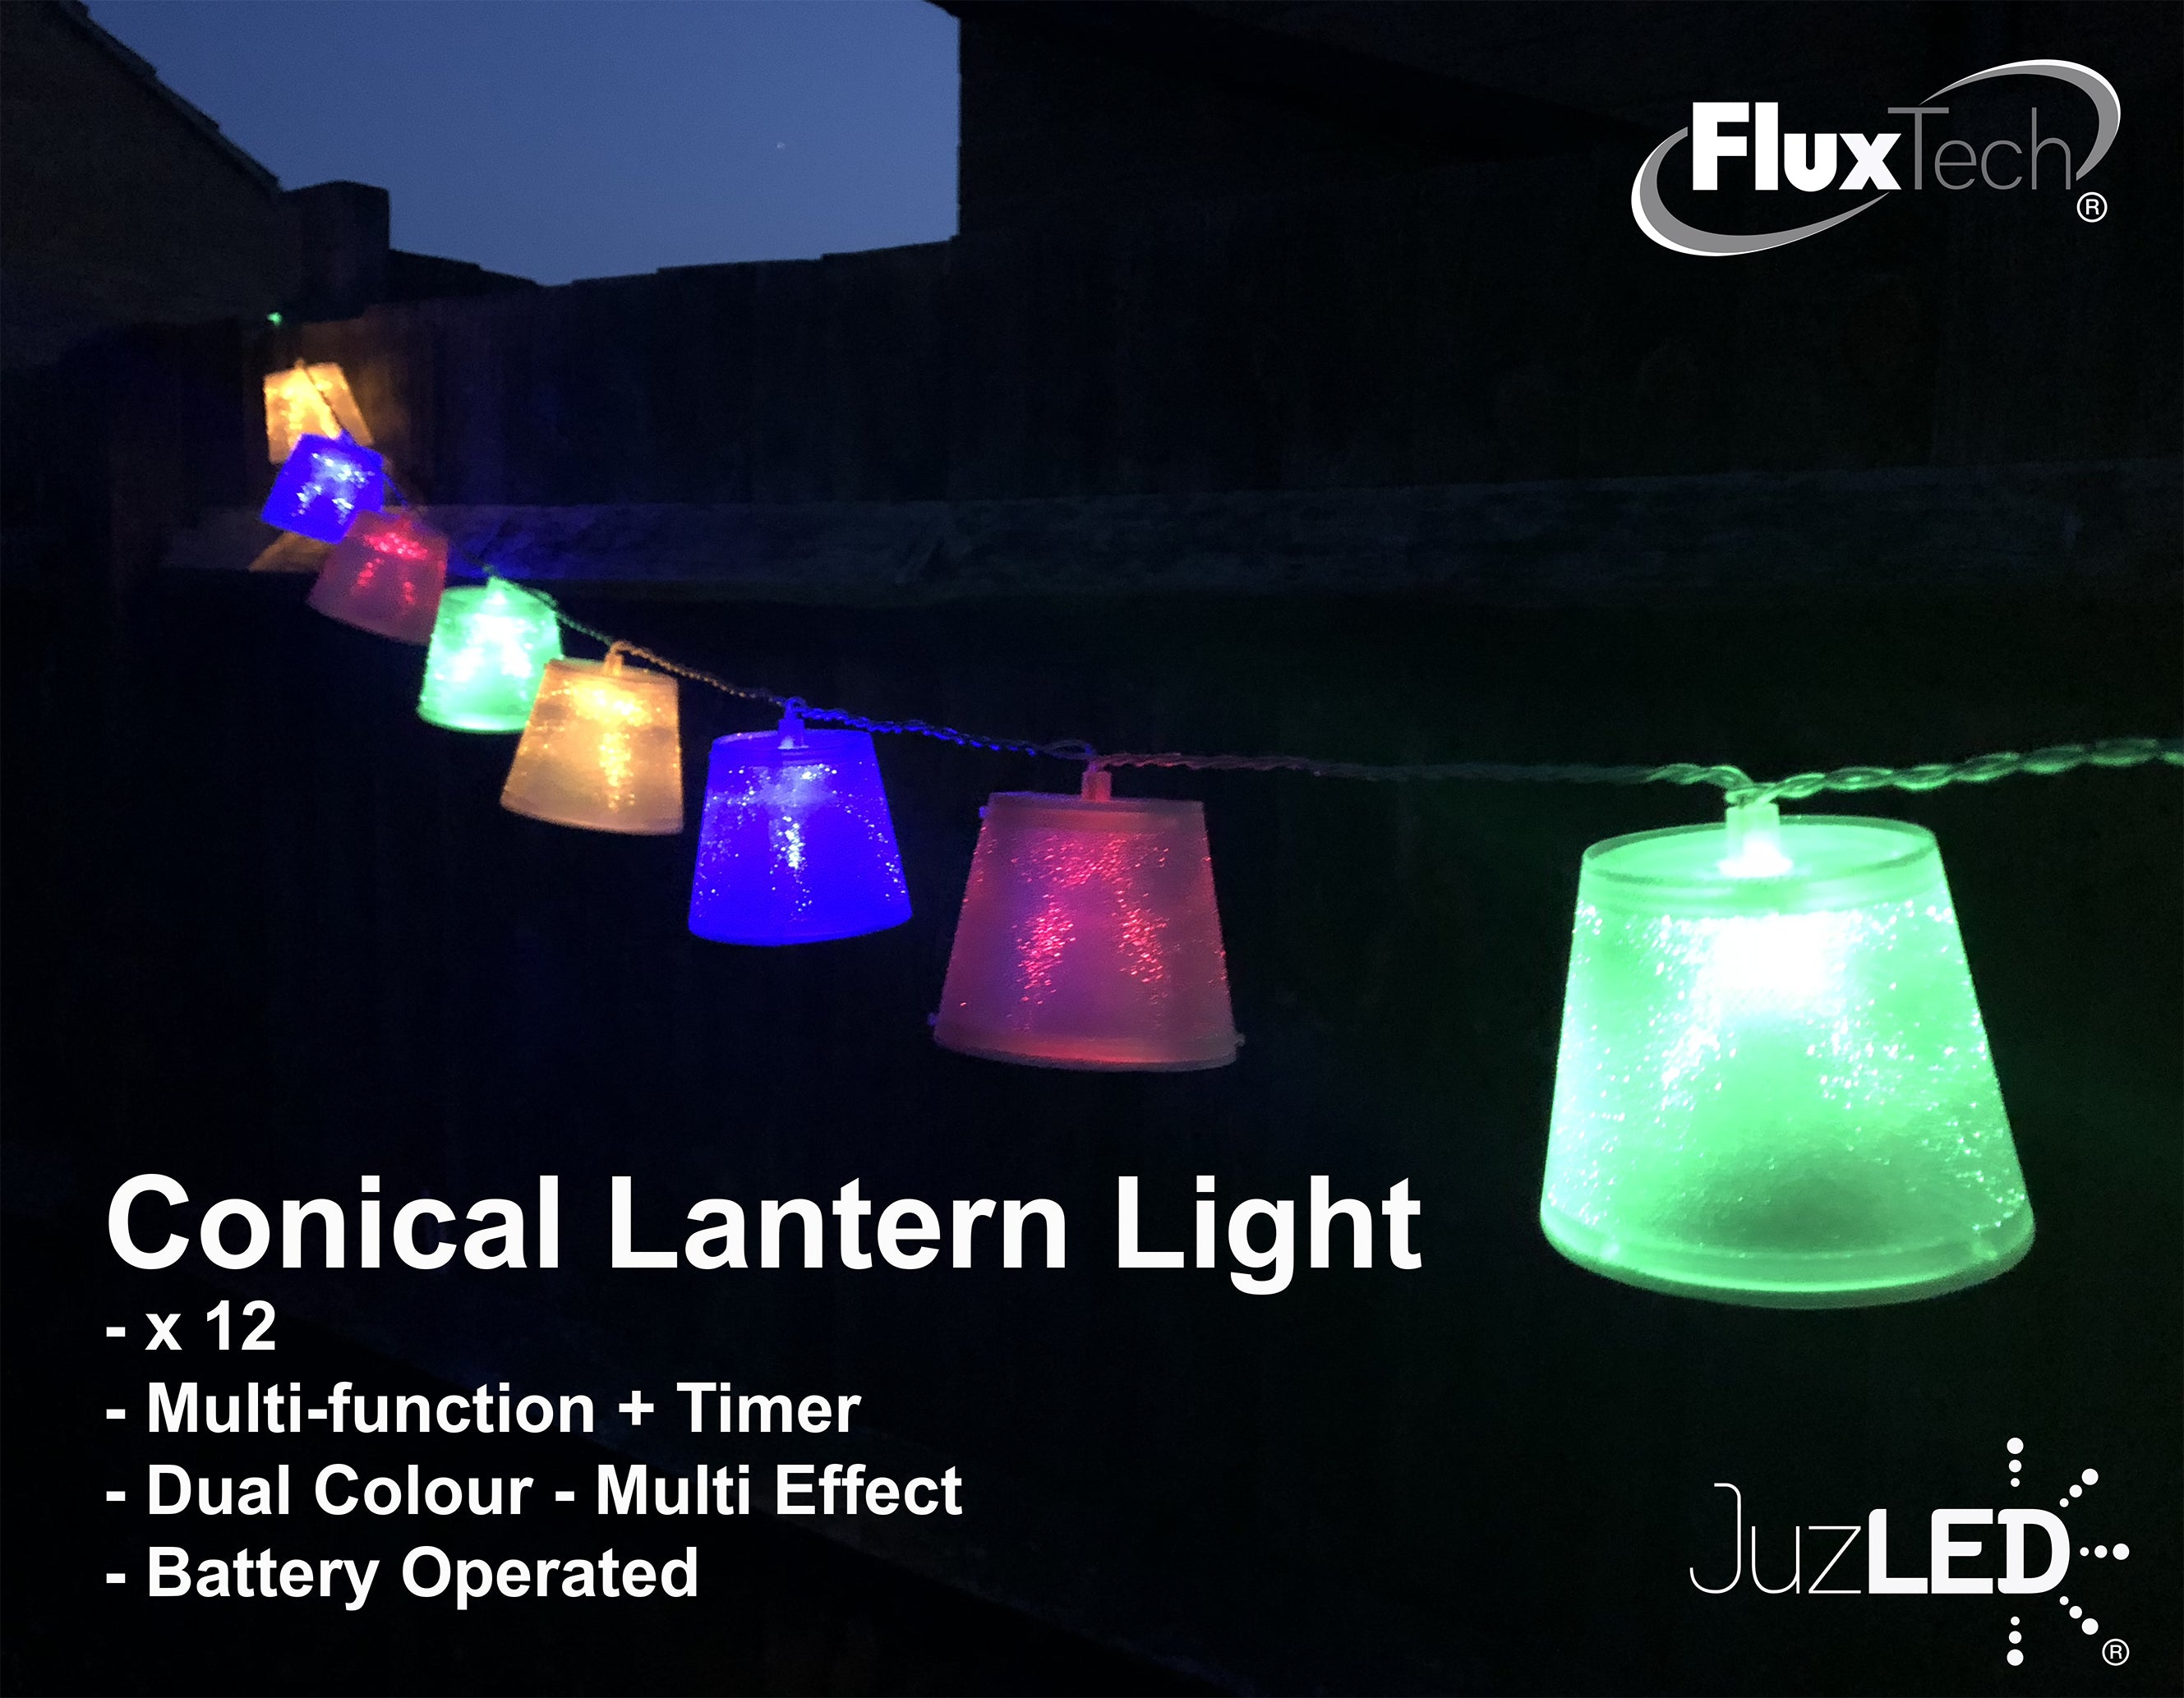 FluxTech - Conical Lantern 20 x Dual Colour LED String Lights by JustLED – Multi-function Effect – Timer function - Battery Operated